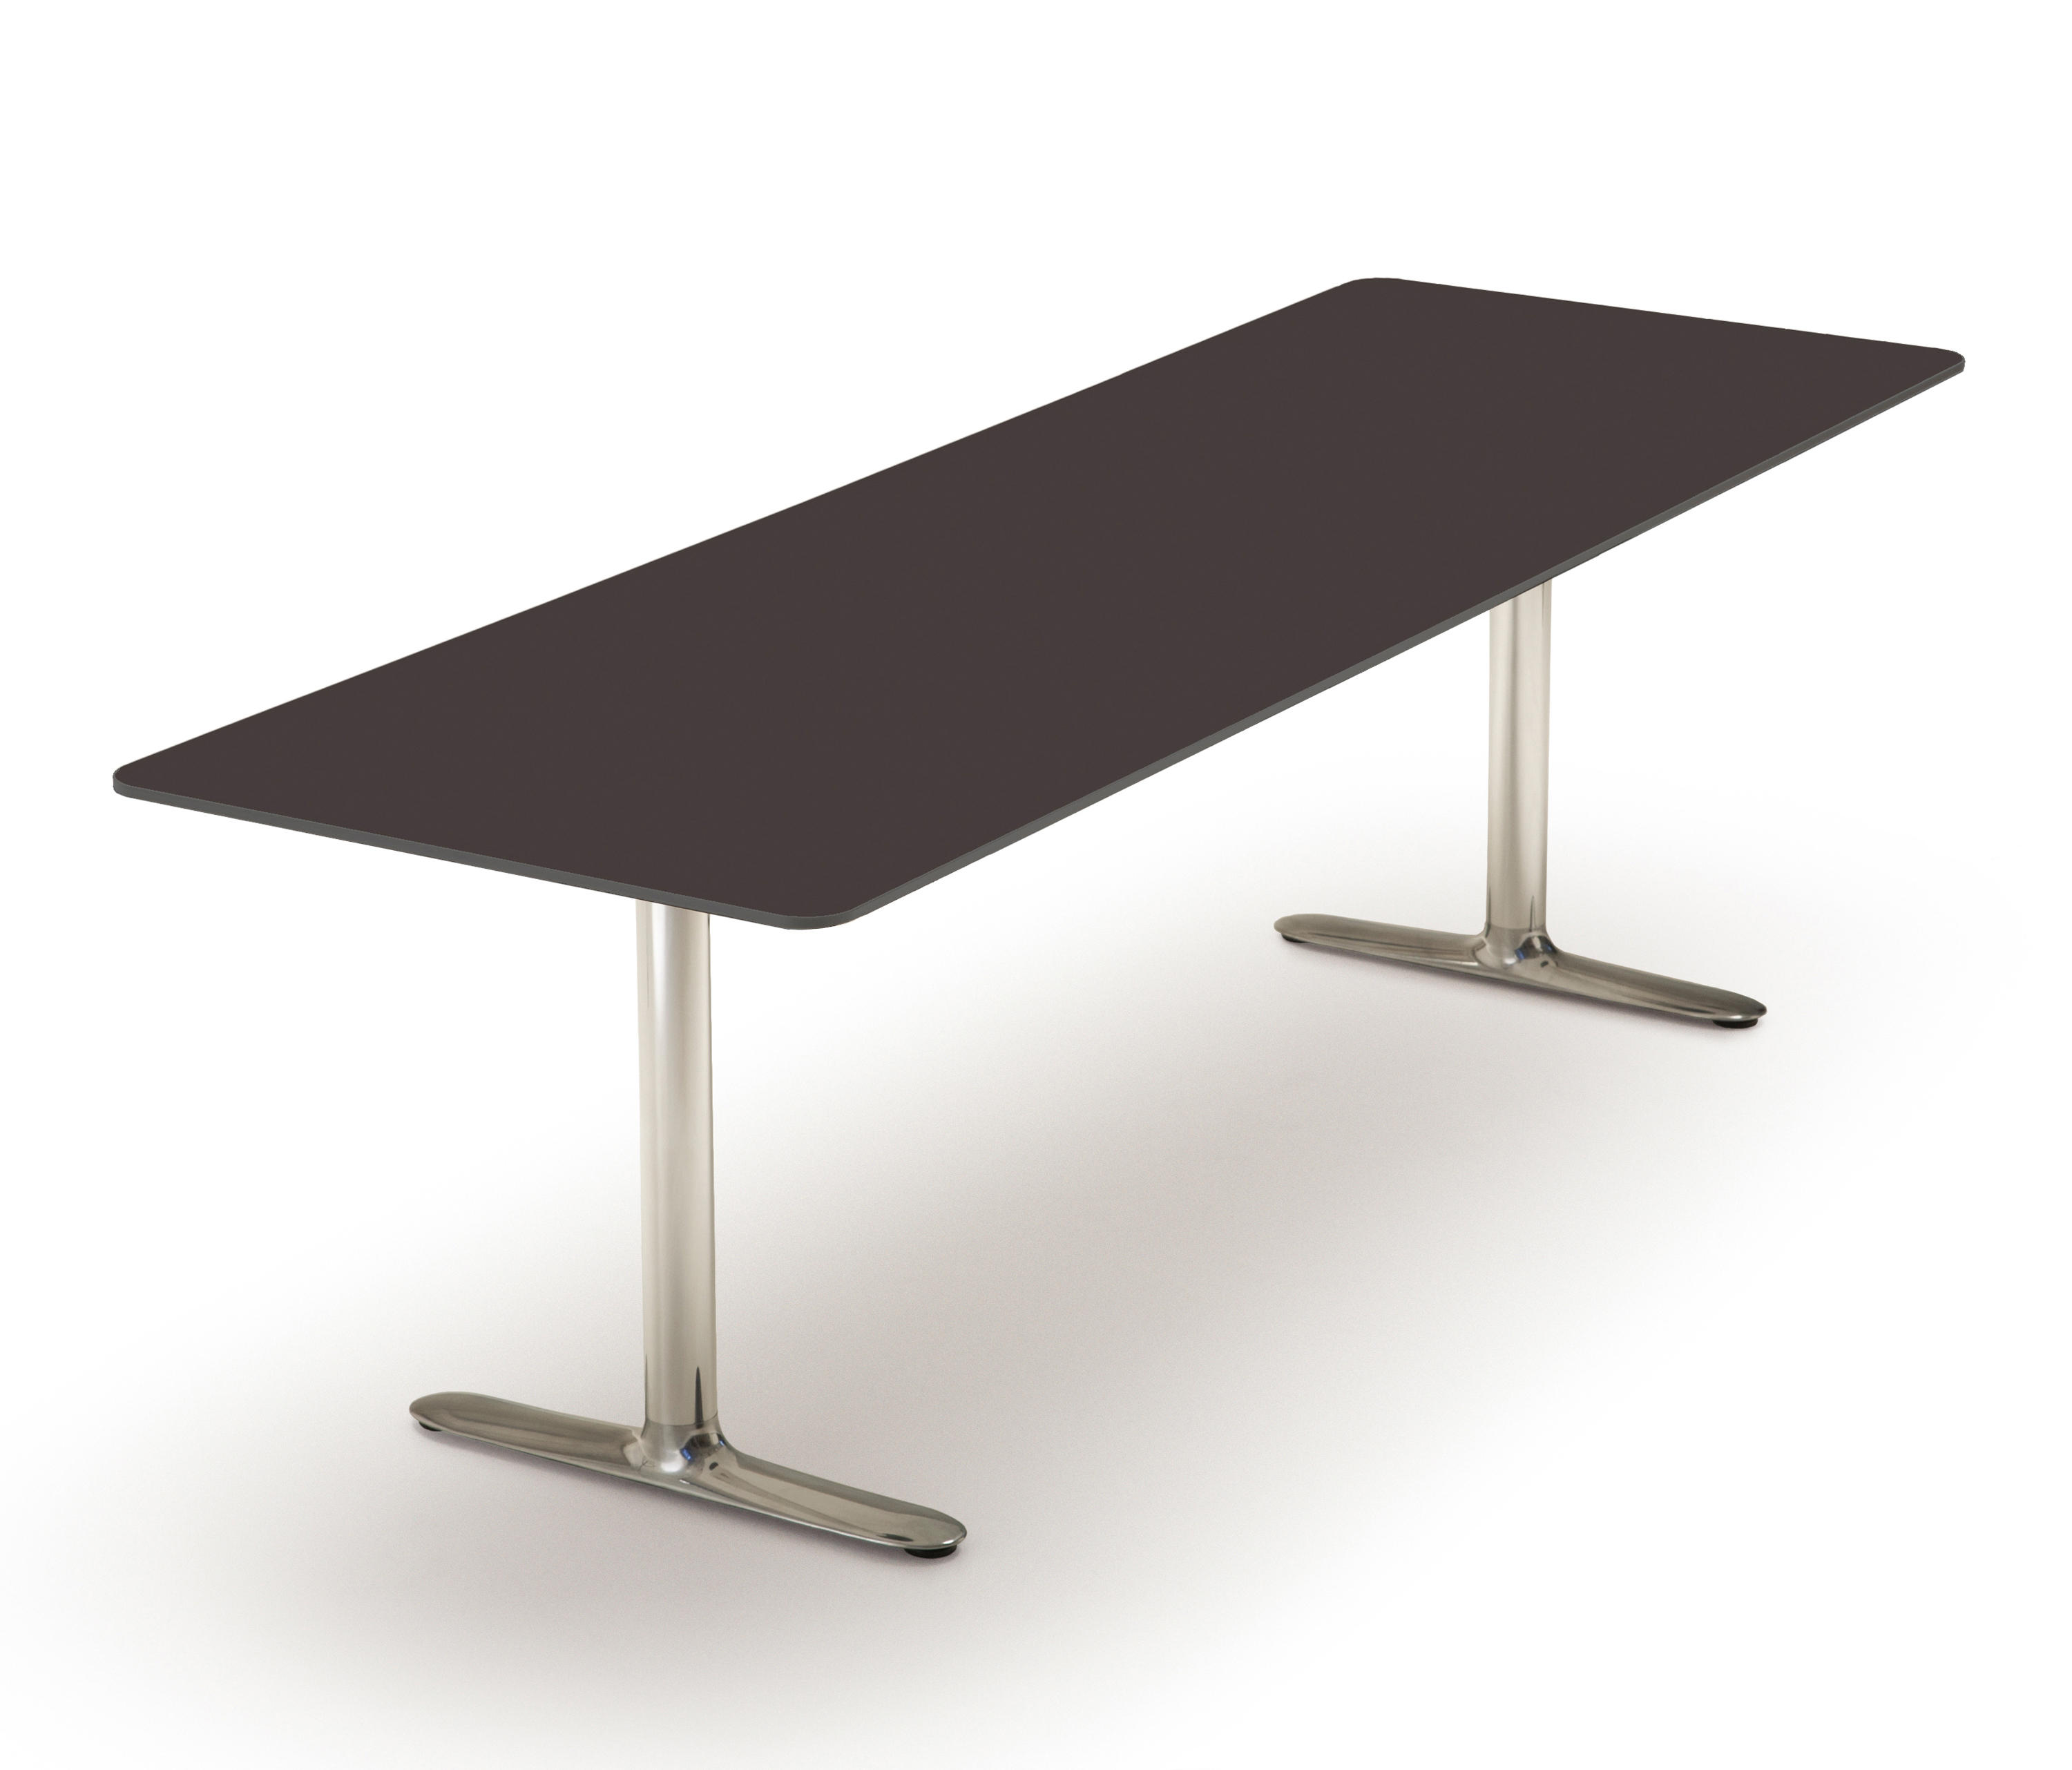 Rome Canteen Table Designer Furniture Architonic